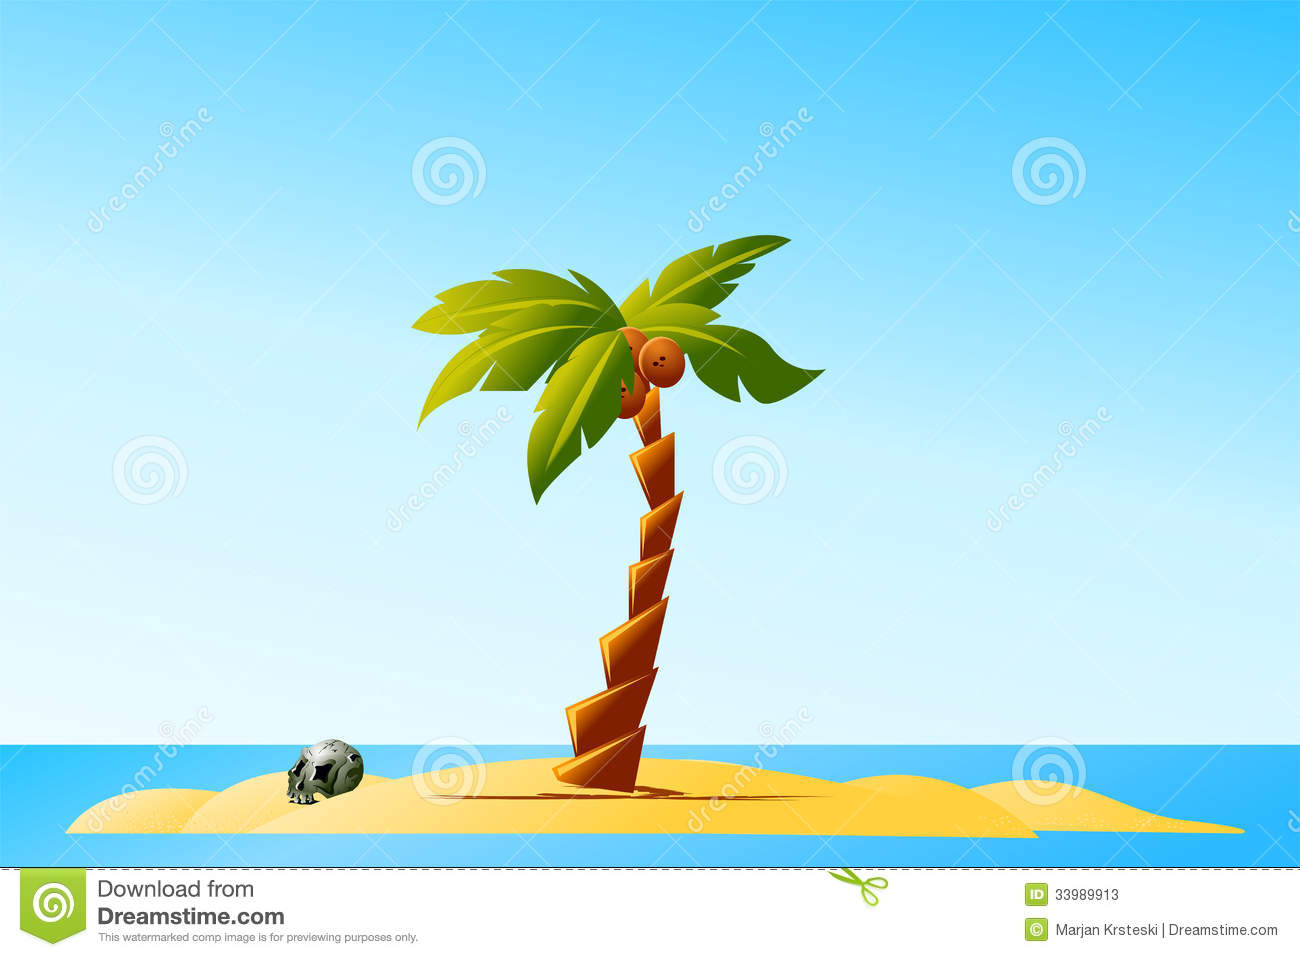 Deserted Tropical Island Cartoon deserted island stock illustrations ... Eagle Silhouette Vector